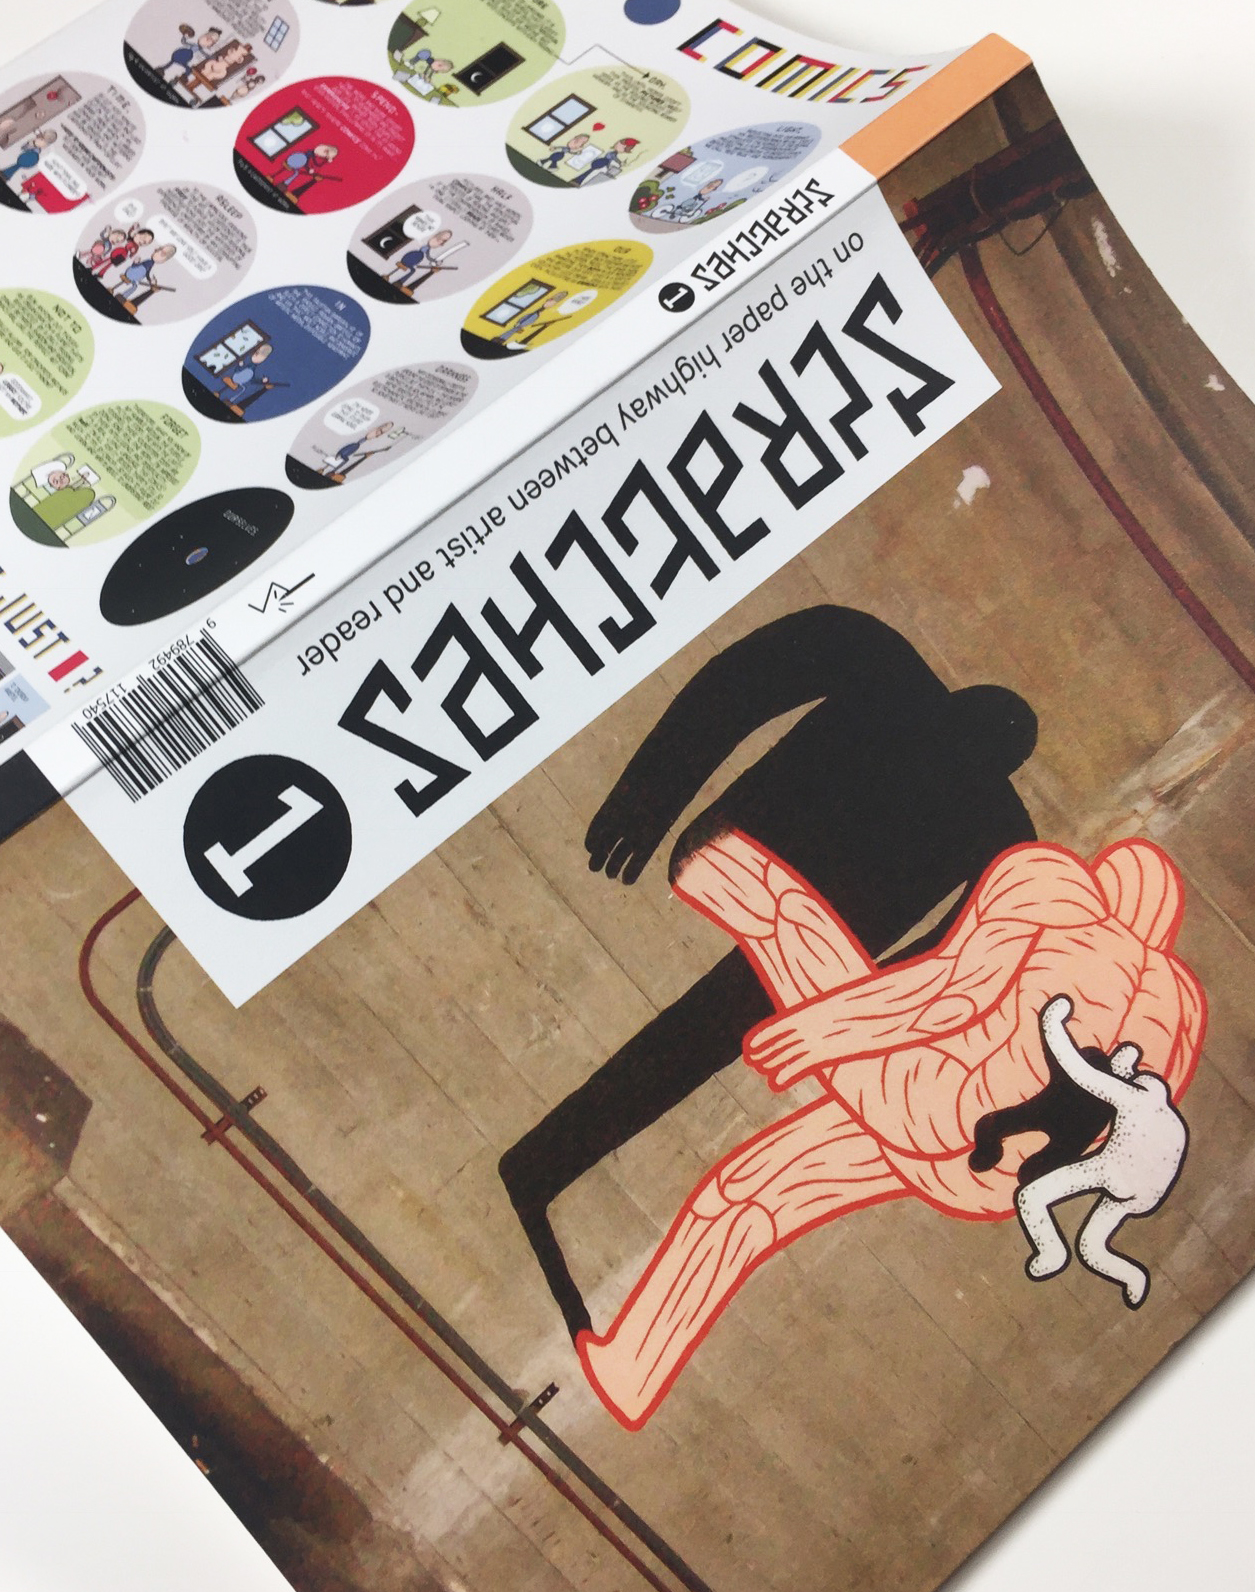 Veiko Tammjärv's work published in a prestigious avant-garde comic magazine in Holland